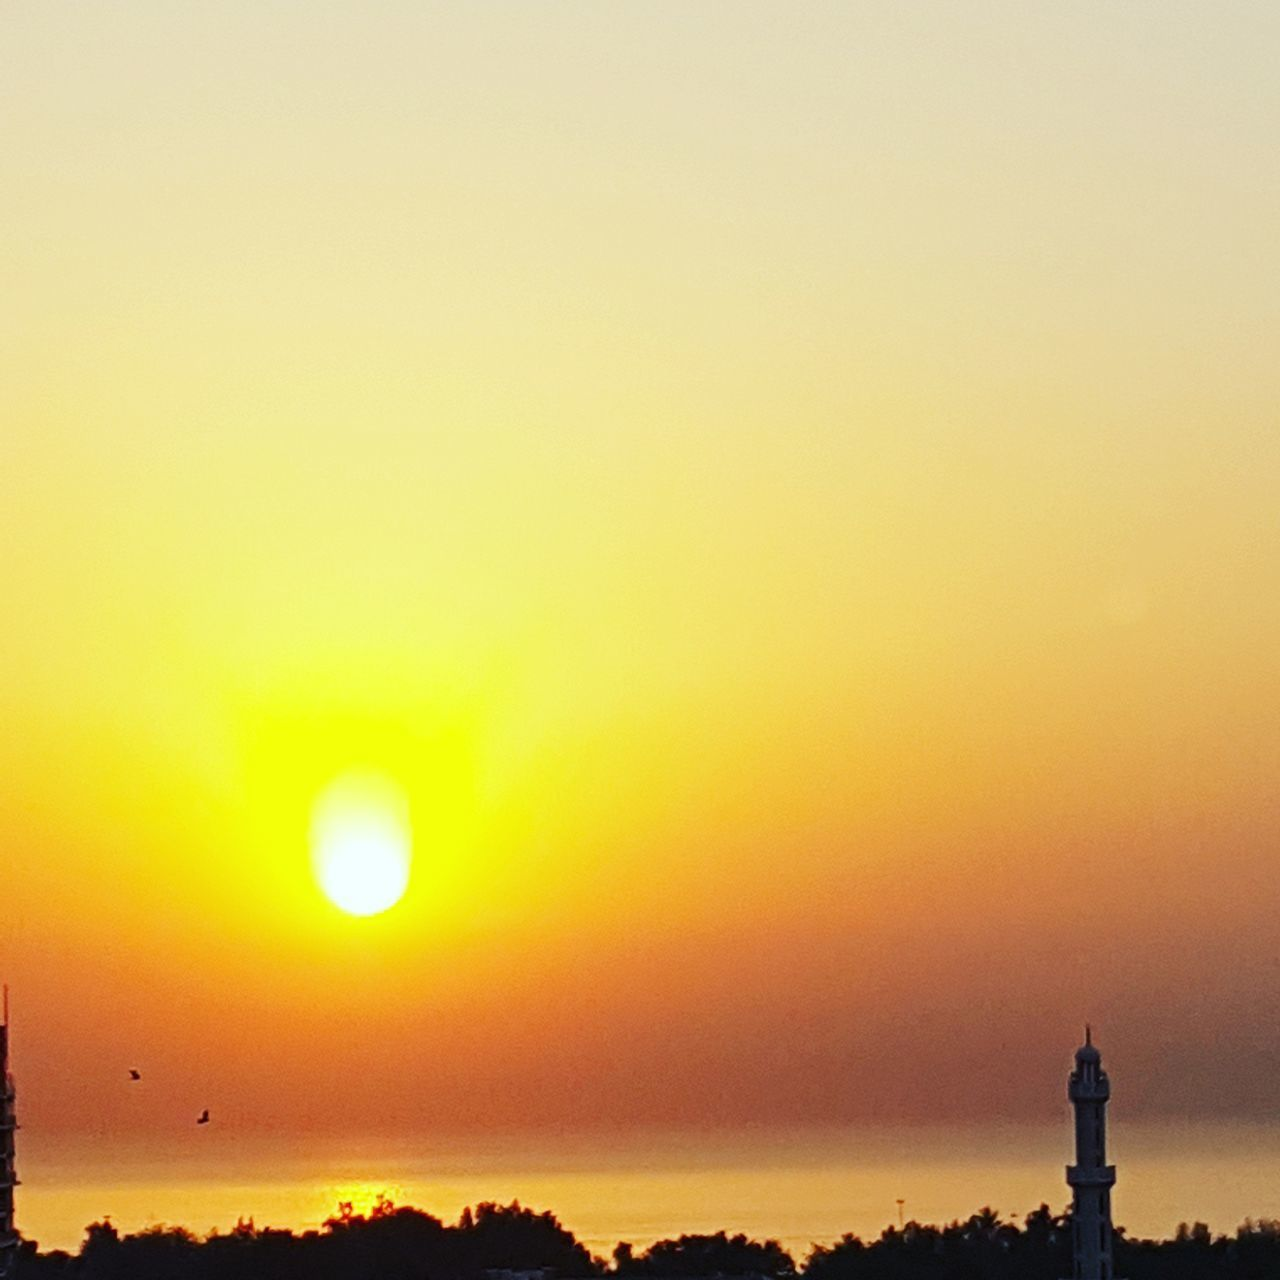 sunset, orange color, silhouette, beauty in nature, nature, scenics, tranquility, copy space, travel destinations, tranquil scene, sun, outdoors, sky, no people, statue, clear sky, day